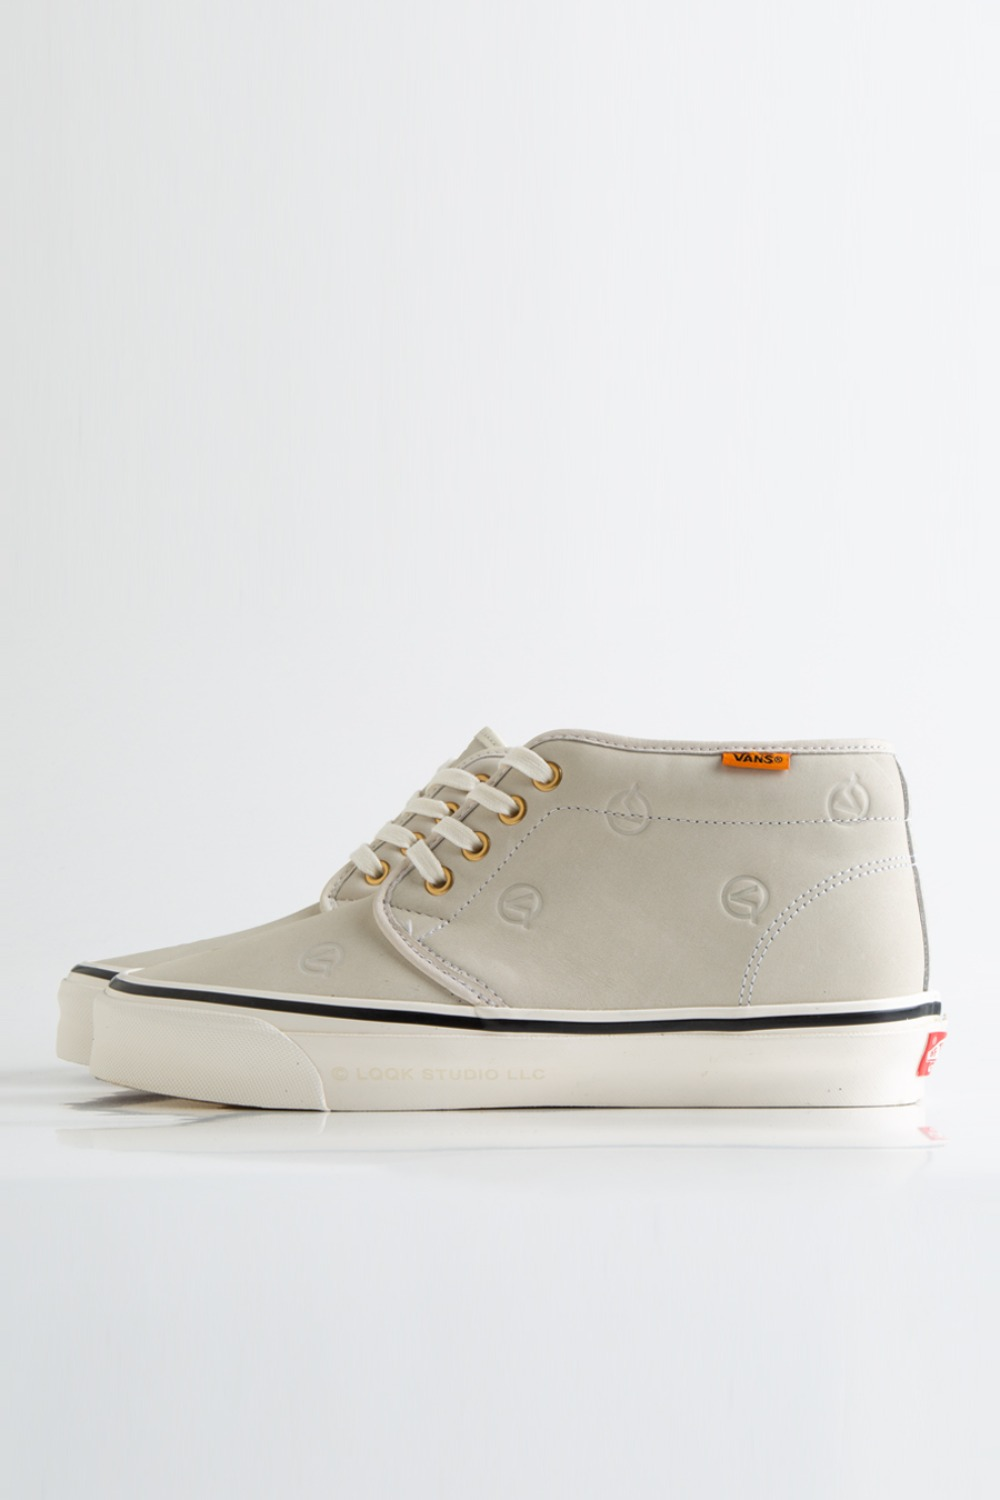 OG Chukka Boot LX(LQQK STUDIO) circle V/cream